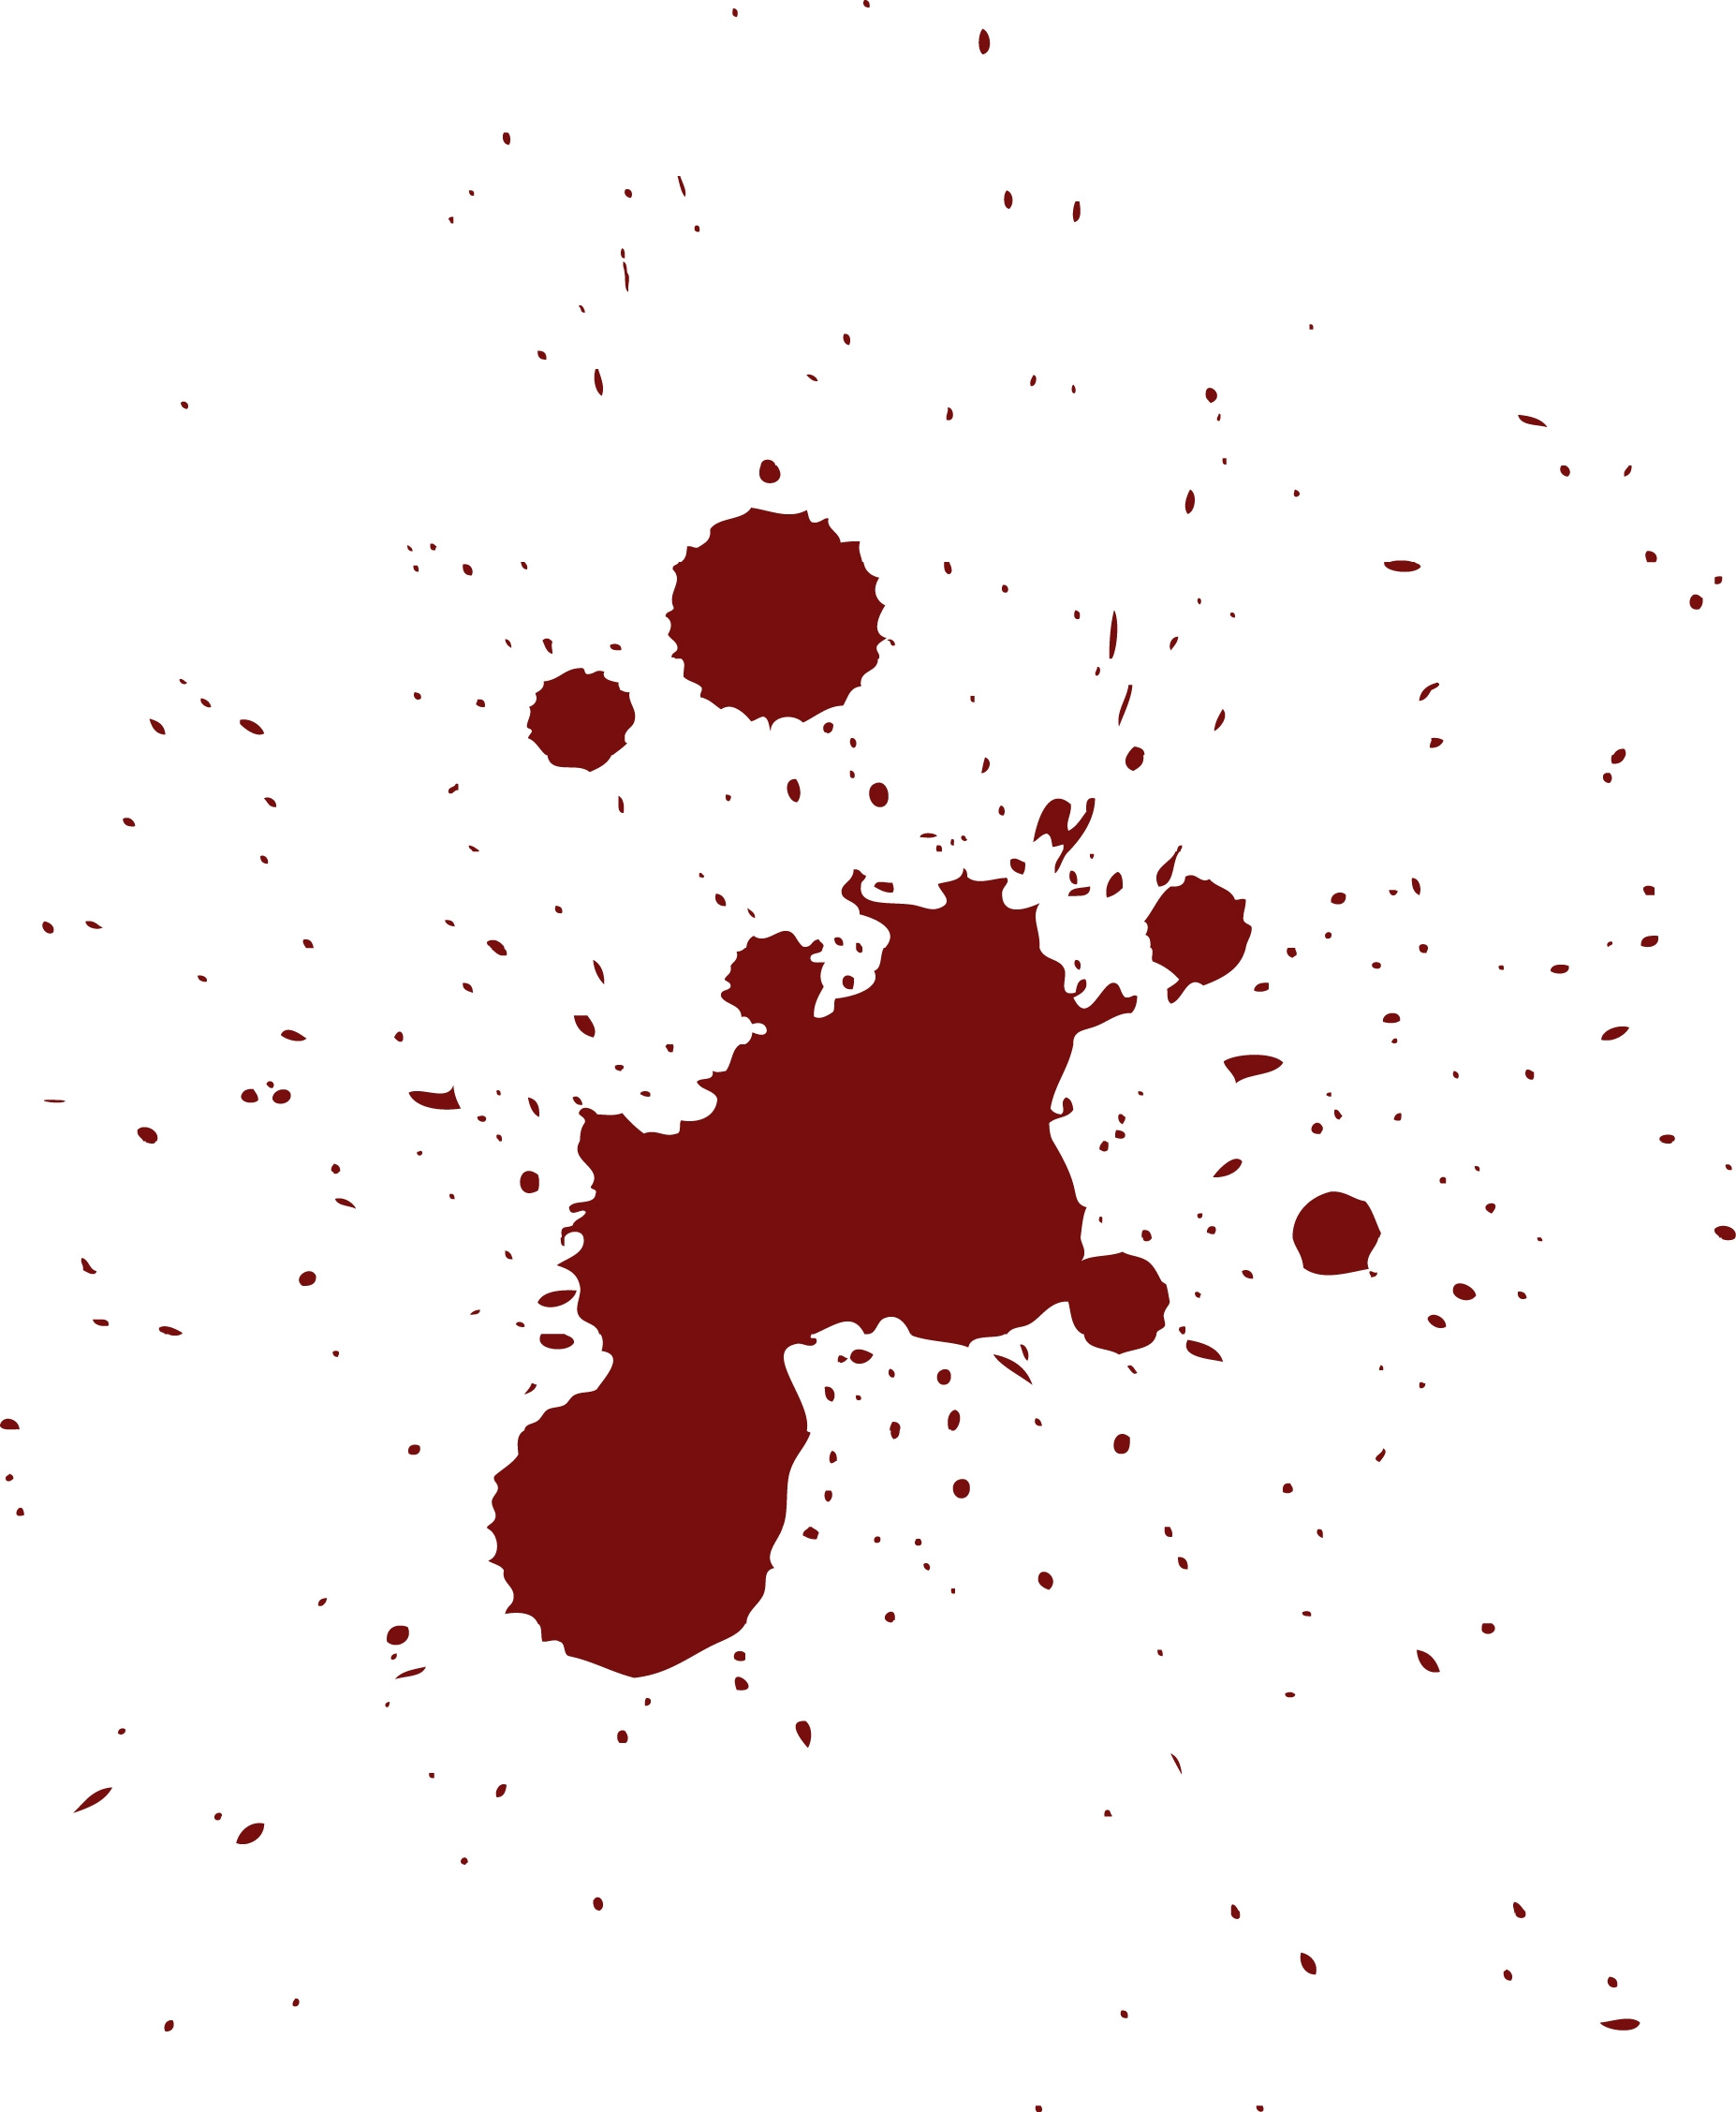 Blood Splatter Clip Art - Cliparts.co